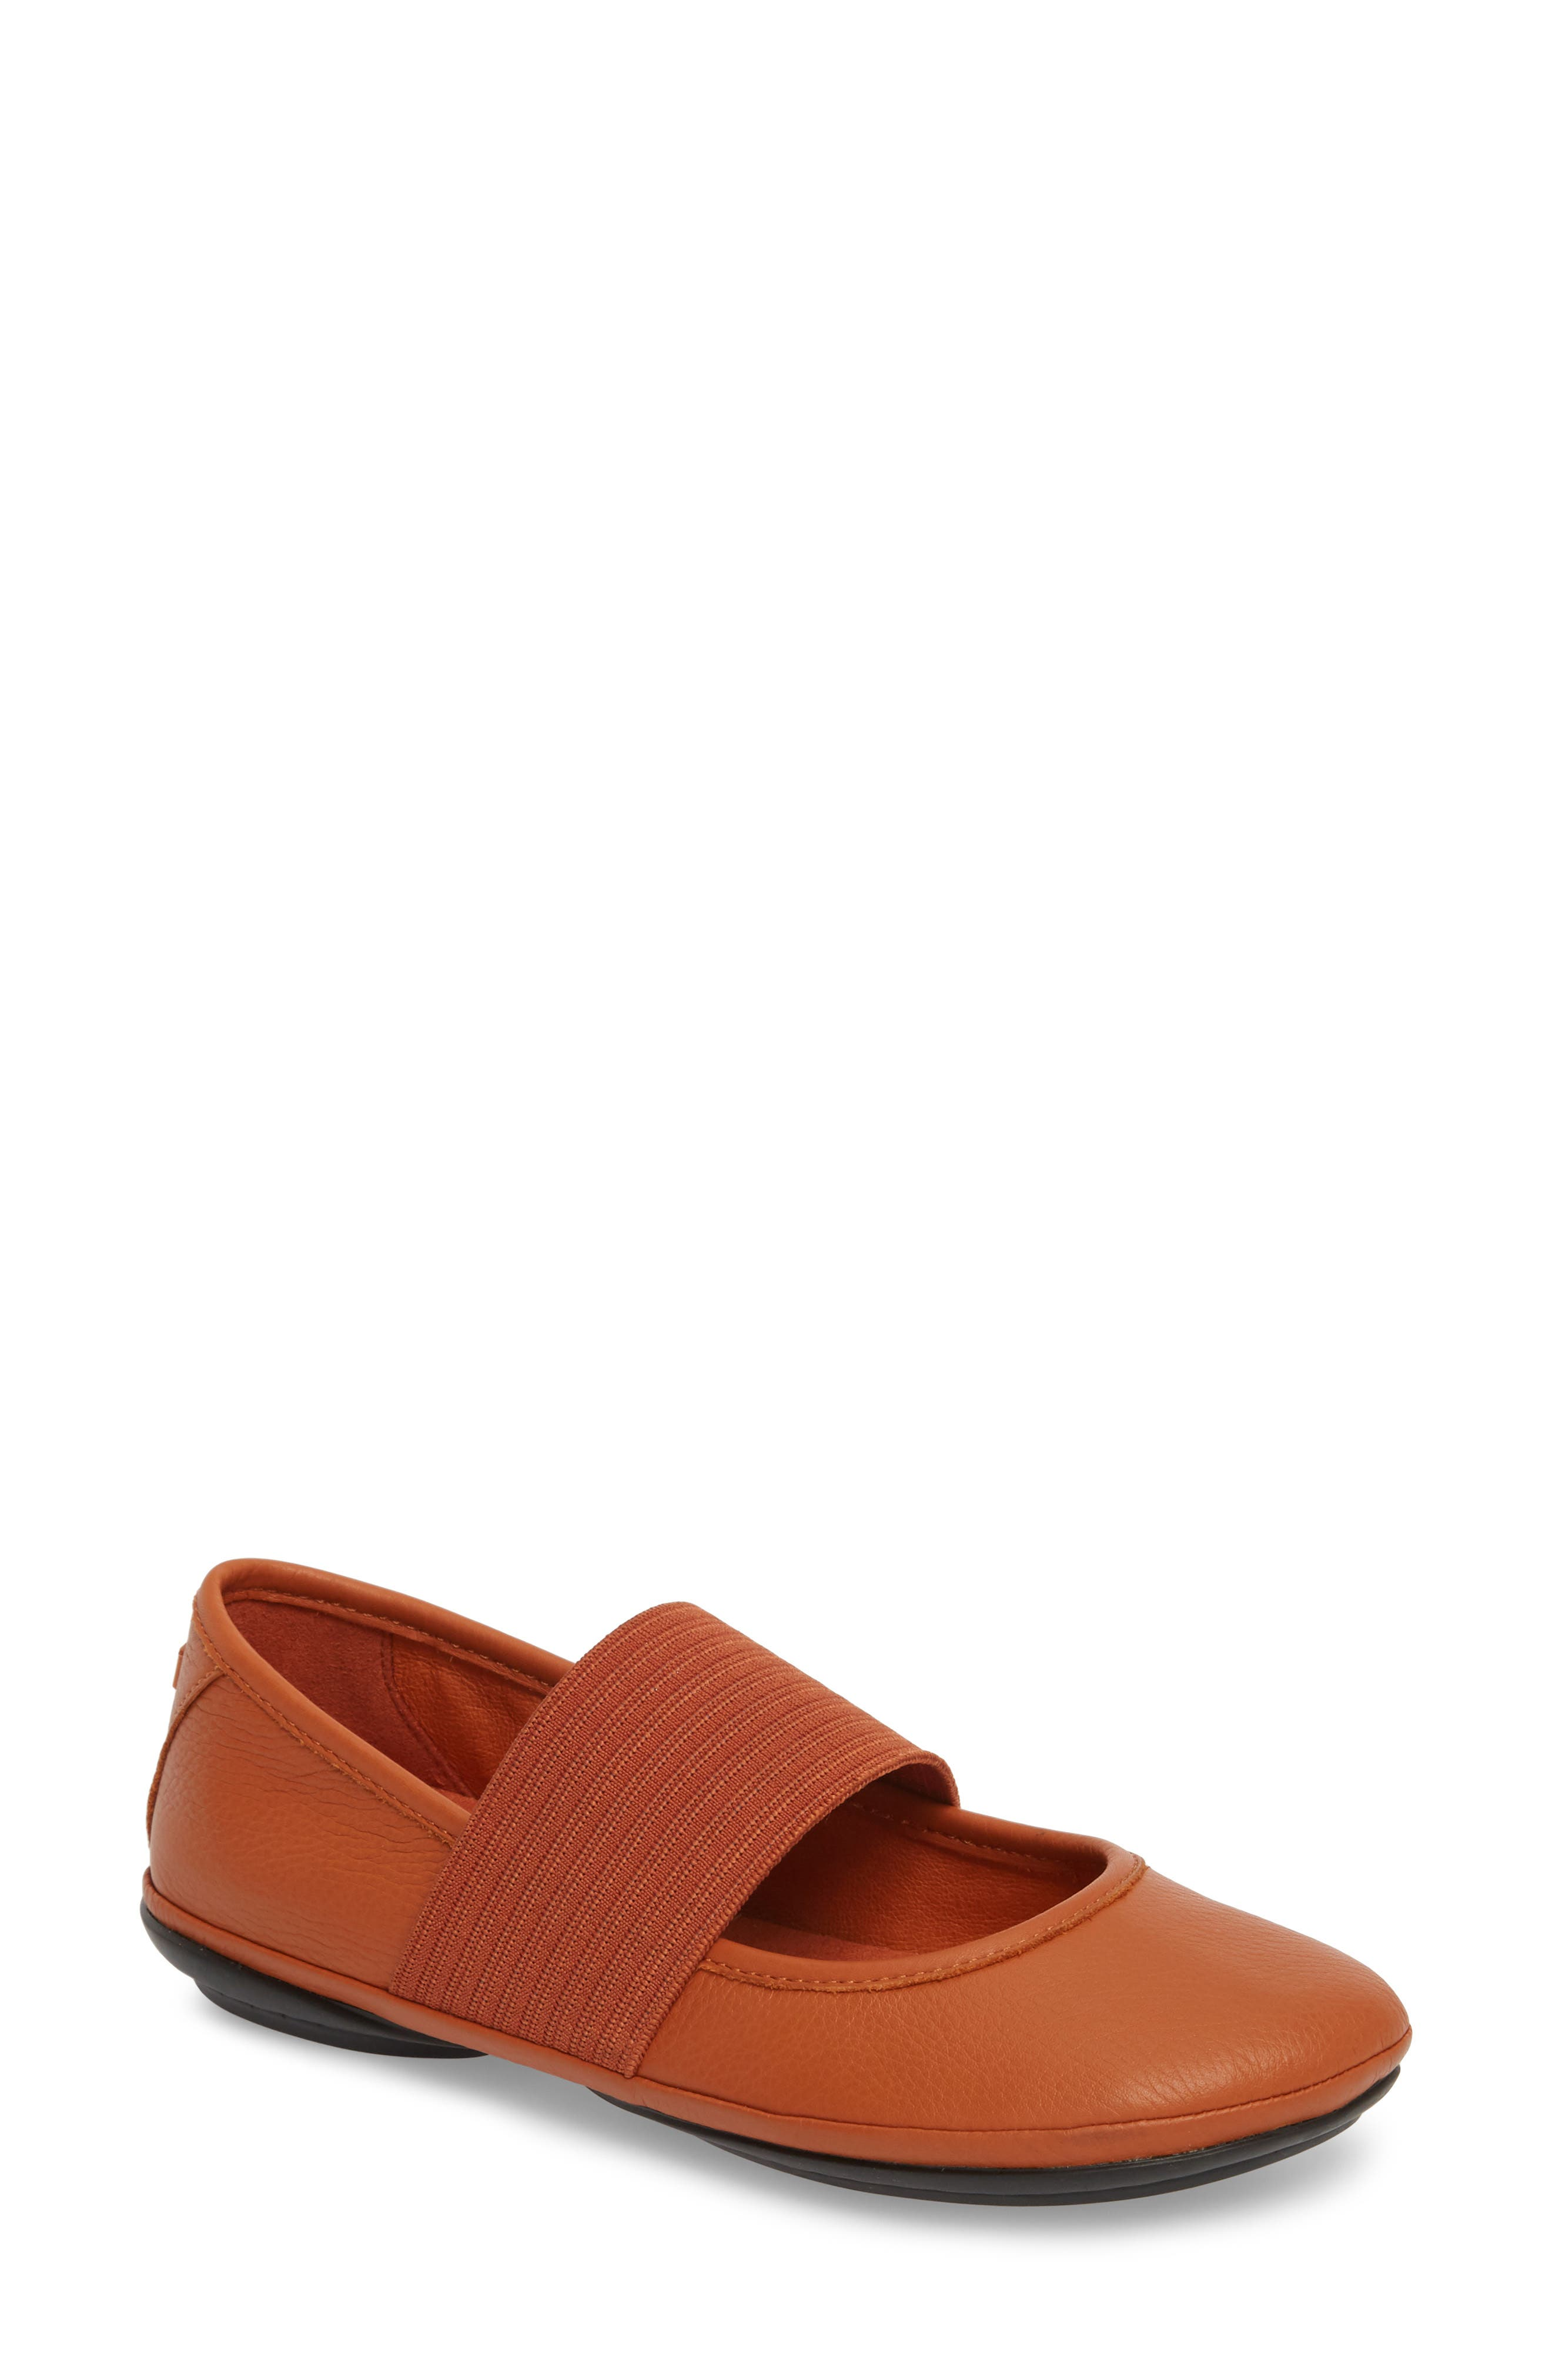 Right Nina Ballet Flat,                         Main,                         color, Rust/Copper Leather